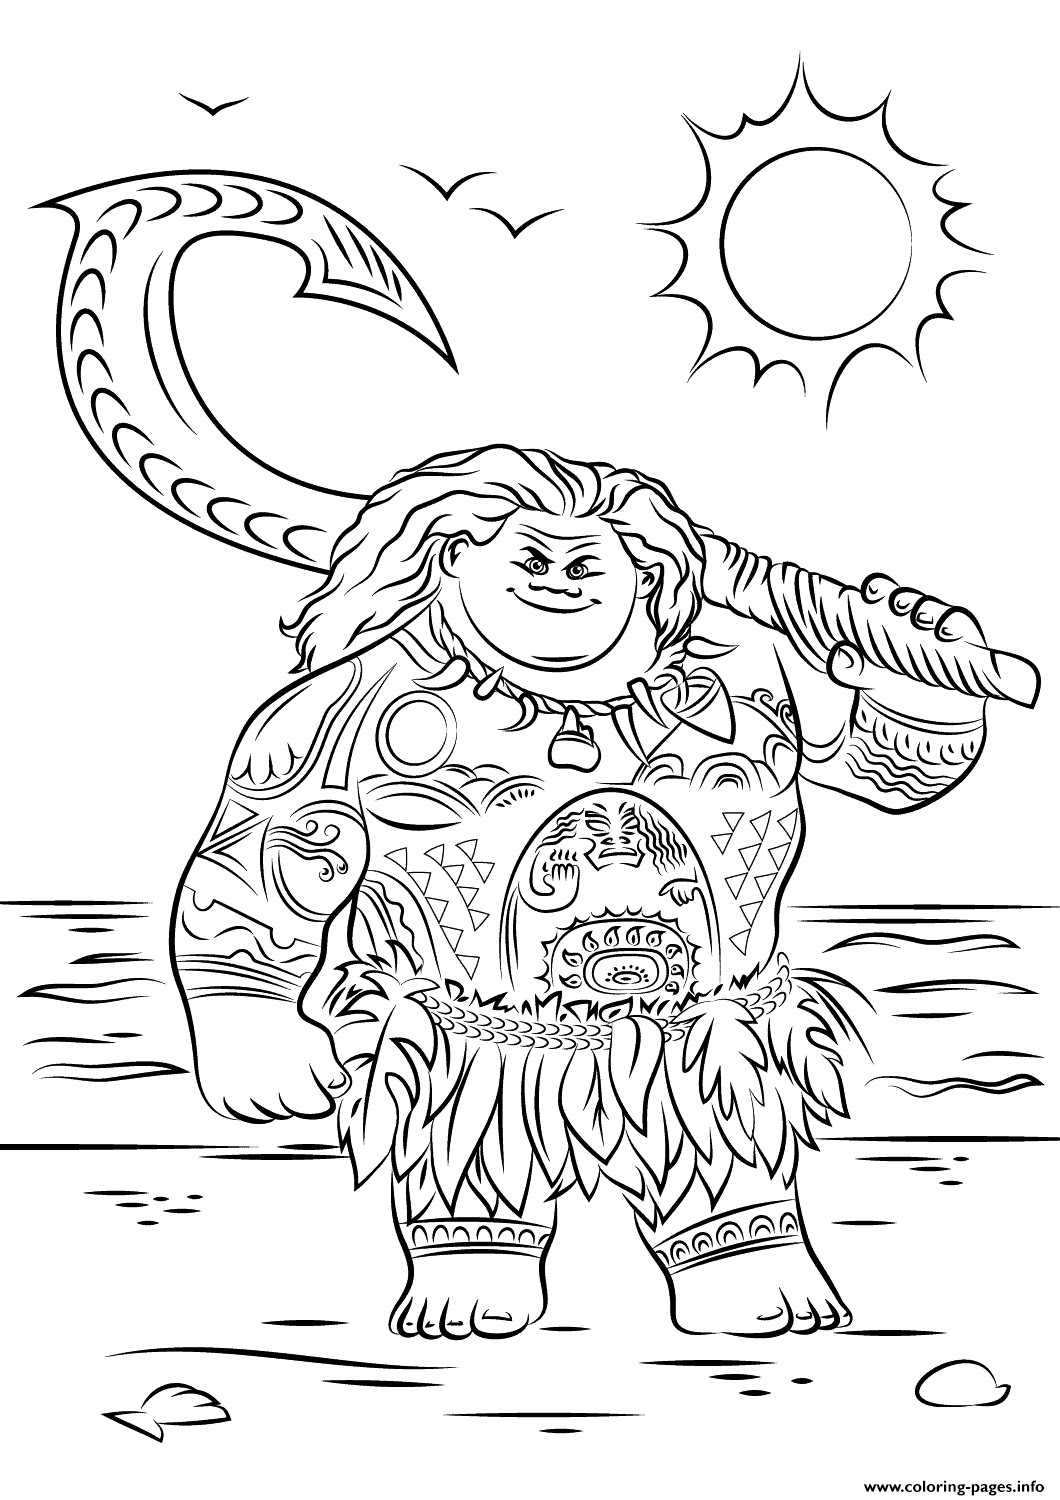 Print Maui From Moana Disney Coloring Pages Moana Coloring Pages Moana Coloring Moana Coloring Sheets